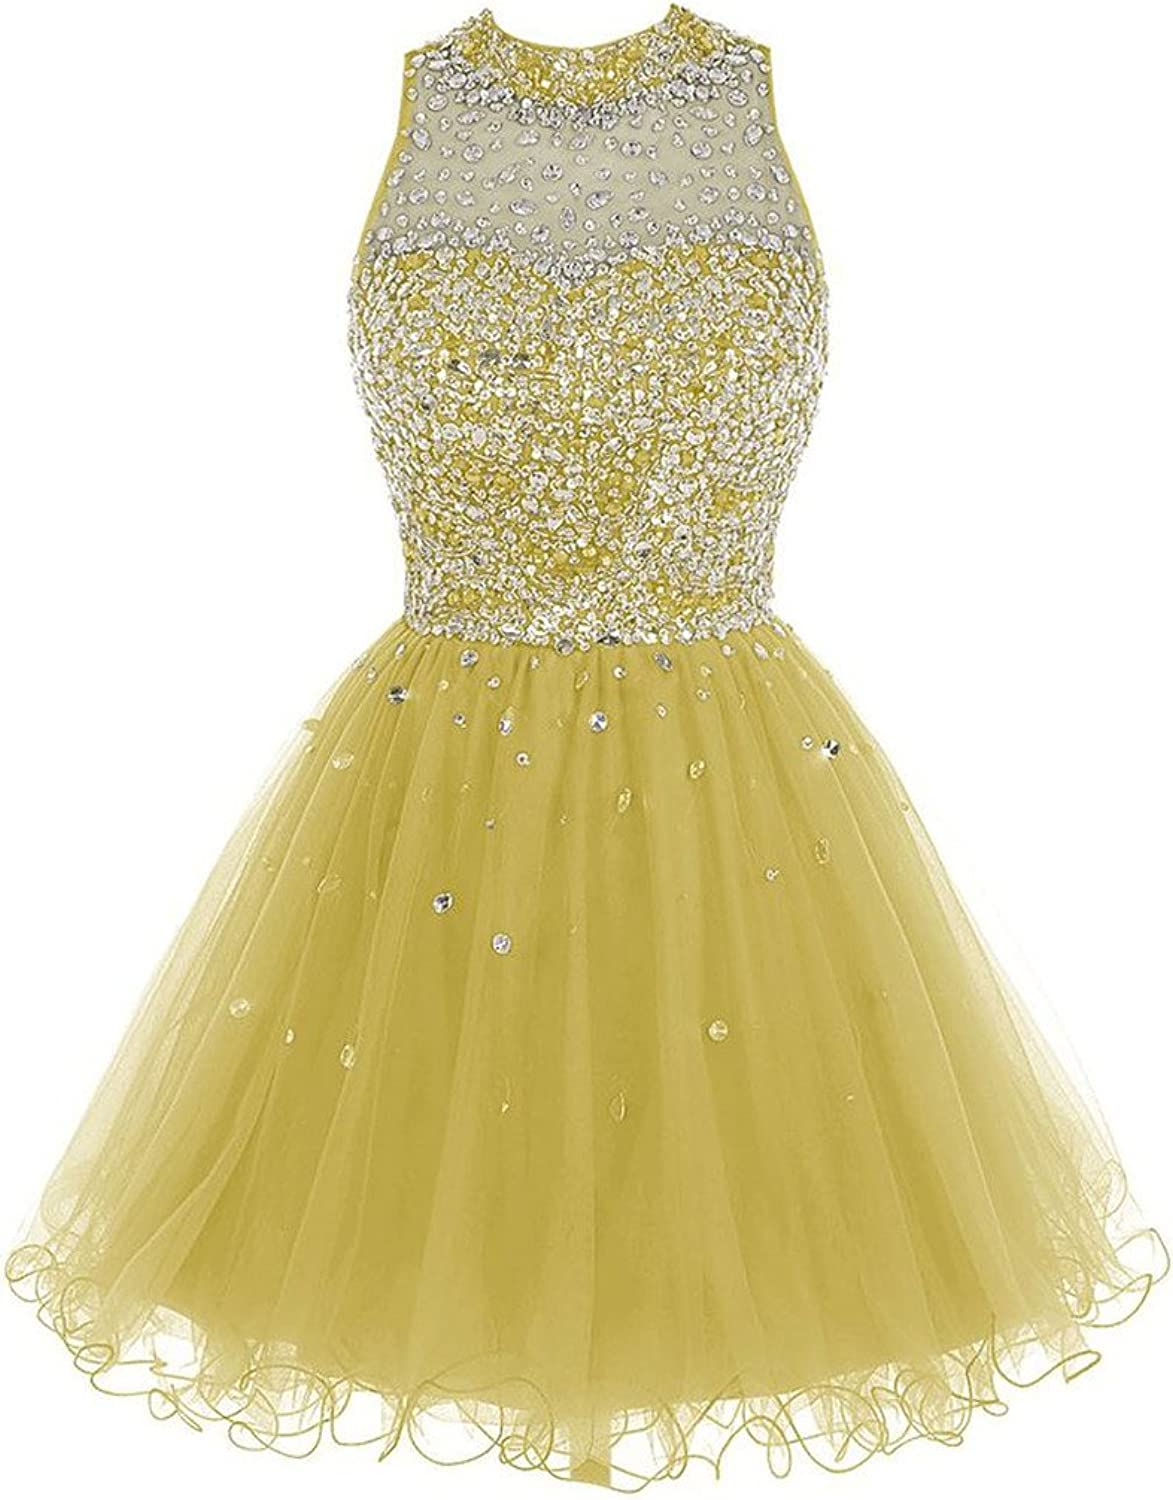 Cdress Crystal Beads High Collar Short Tulle Prom Dresses Homecoming Party Gowns